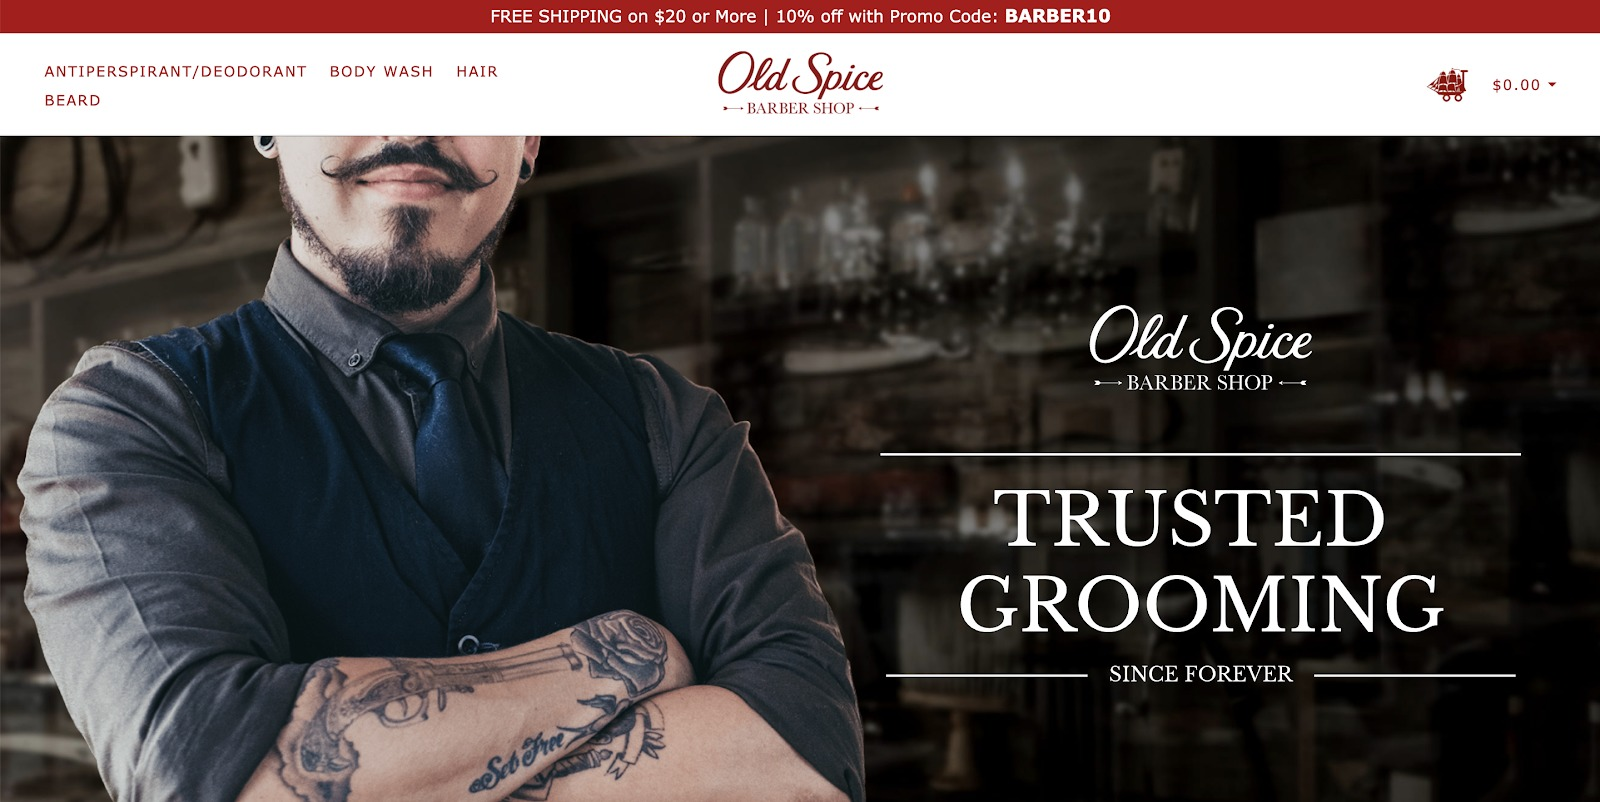 old spice barber shop store example